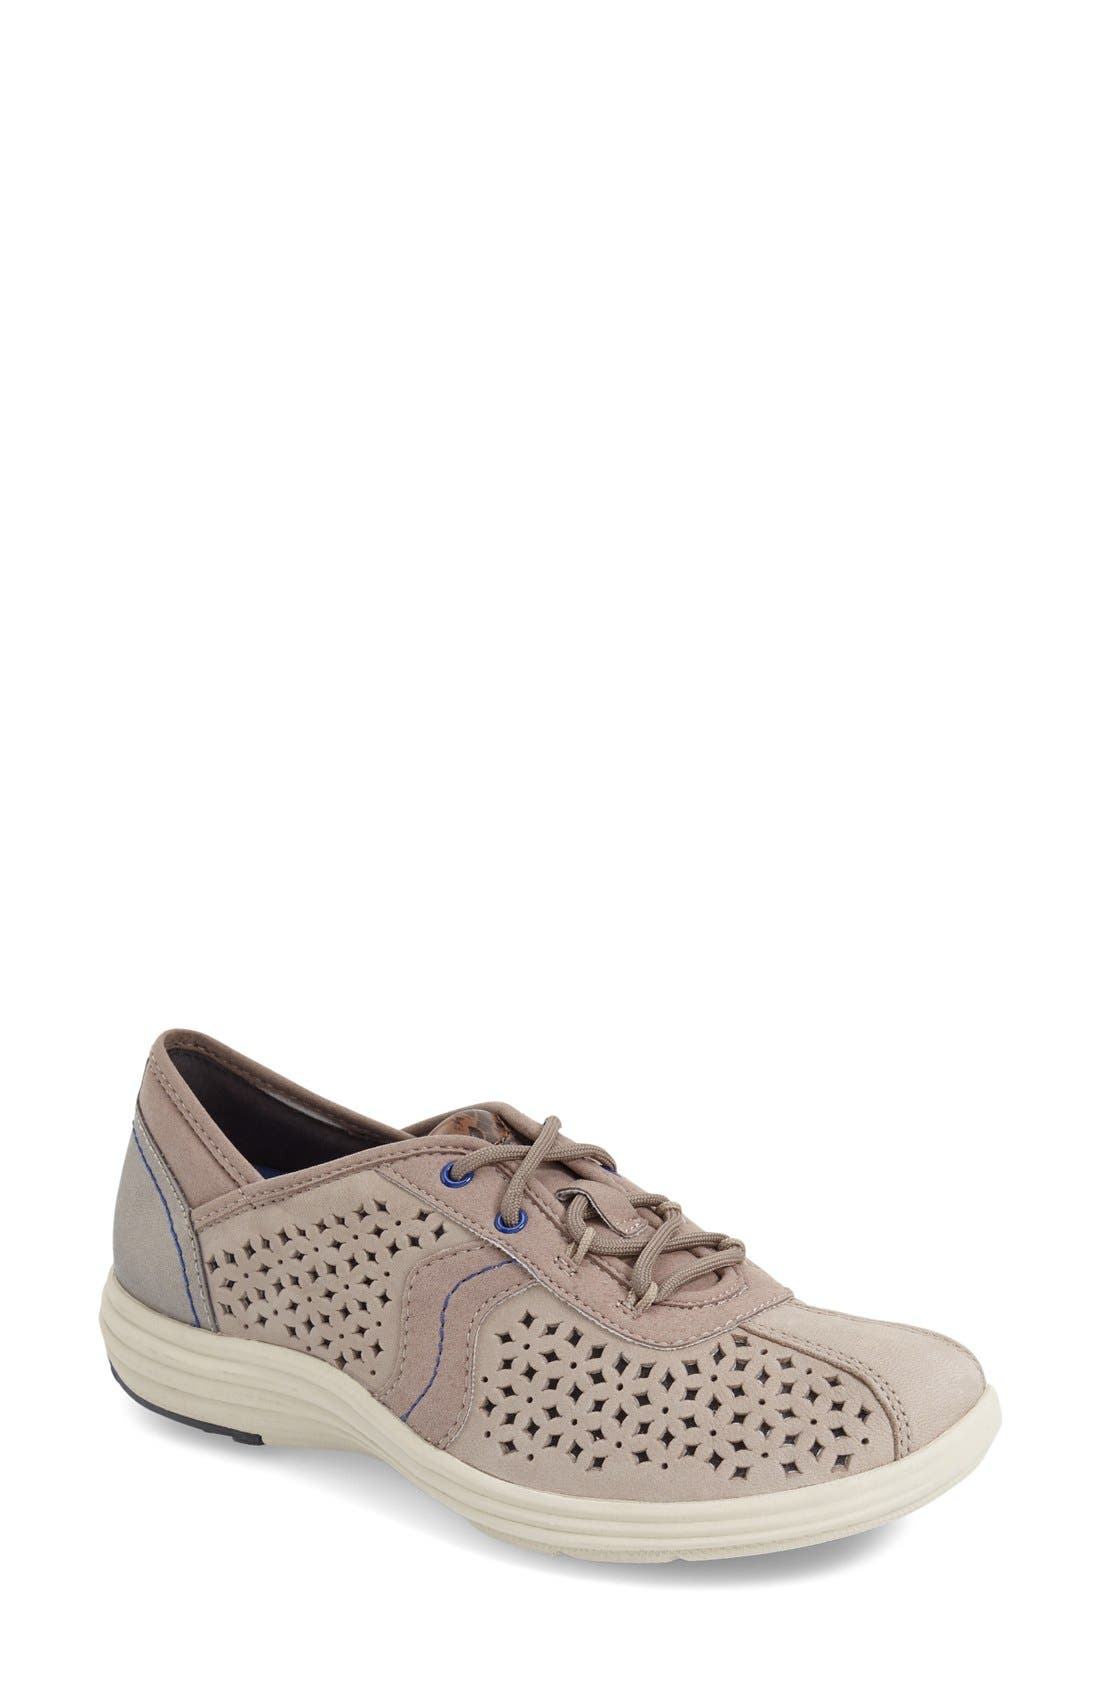 Main Image - Aravon 'Betty' Sneaker (Women)